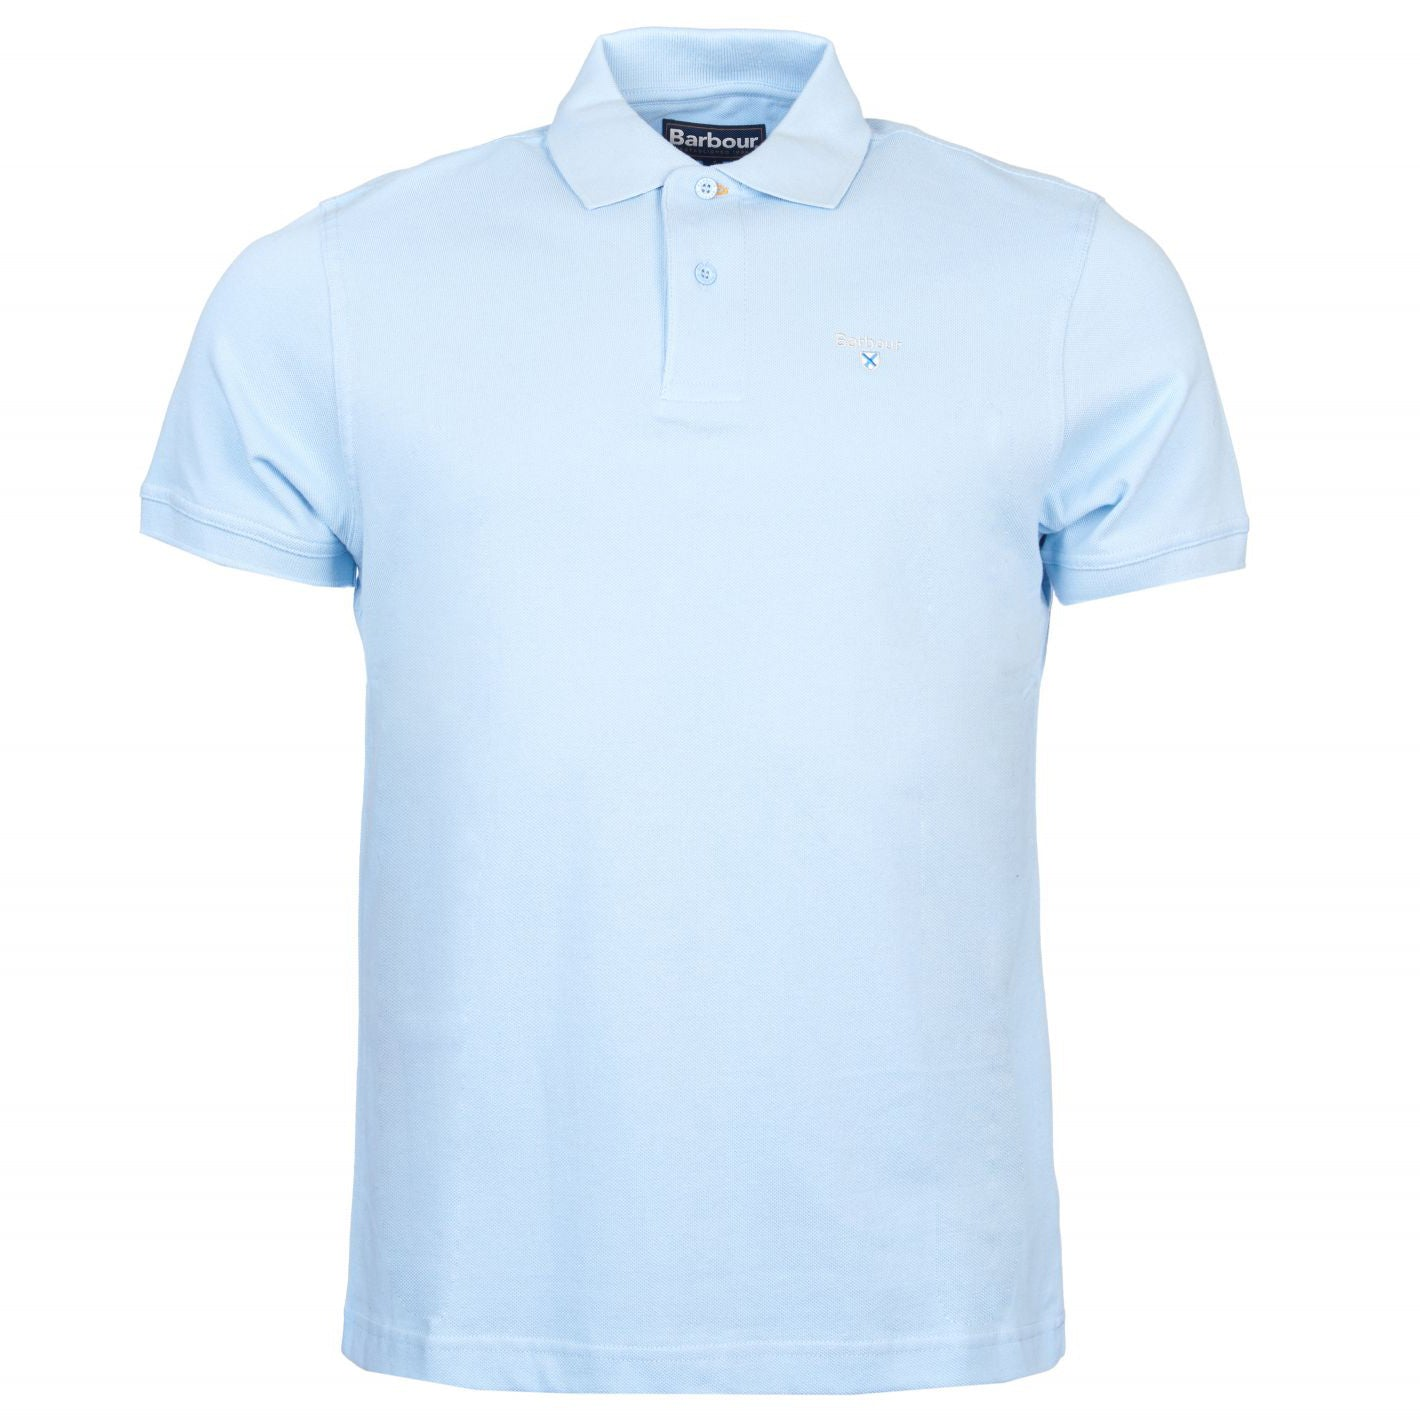 Barbour Sports Short Sleeve Polo Shirt Sky